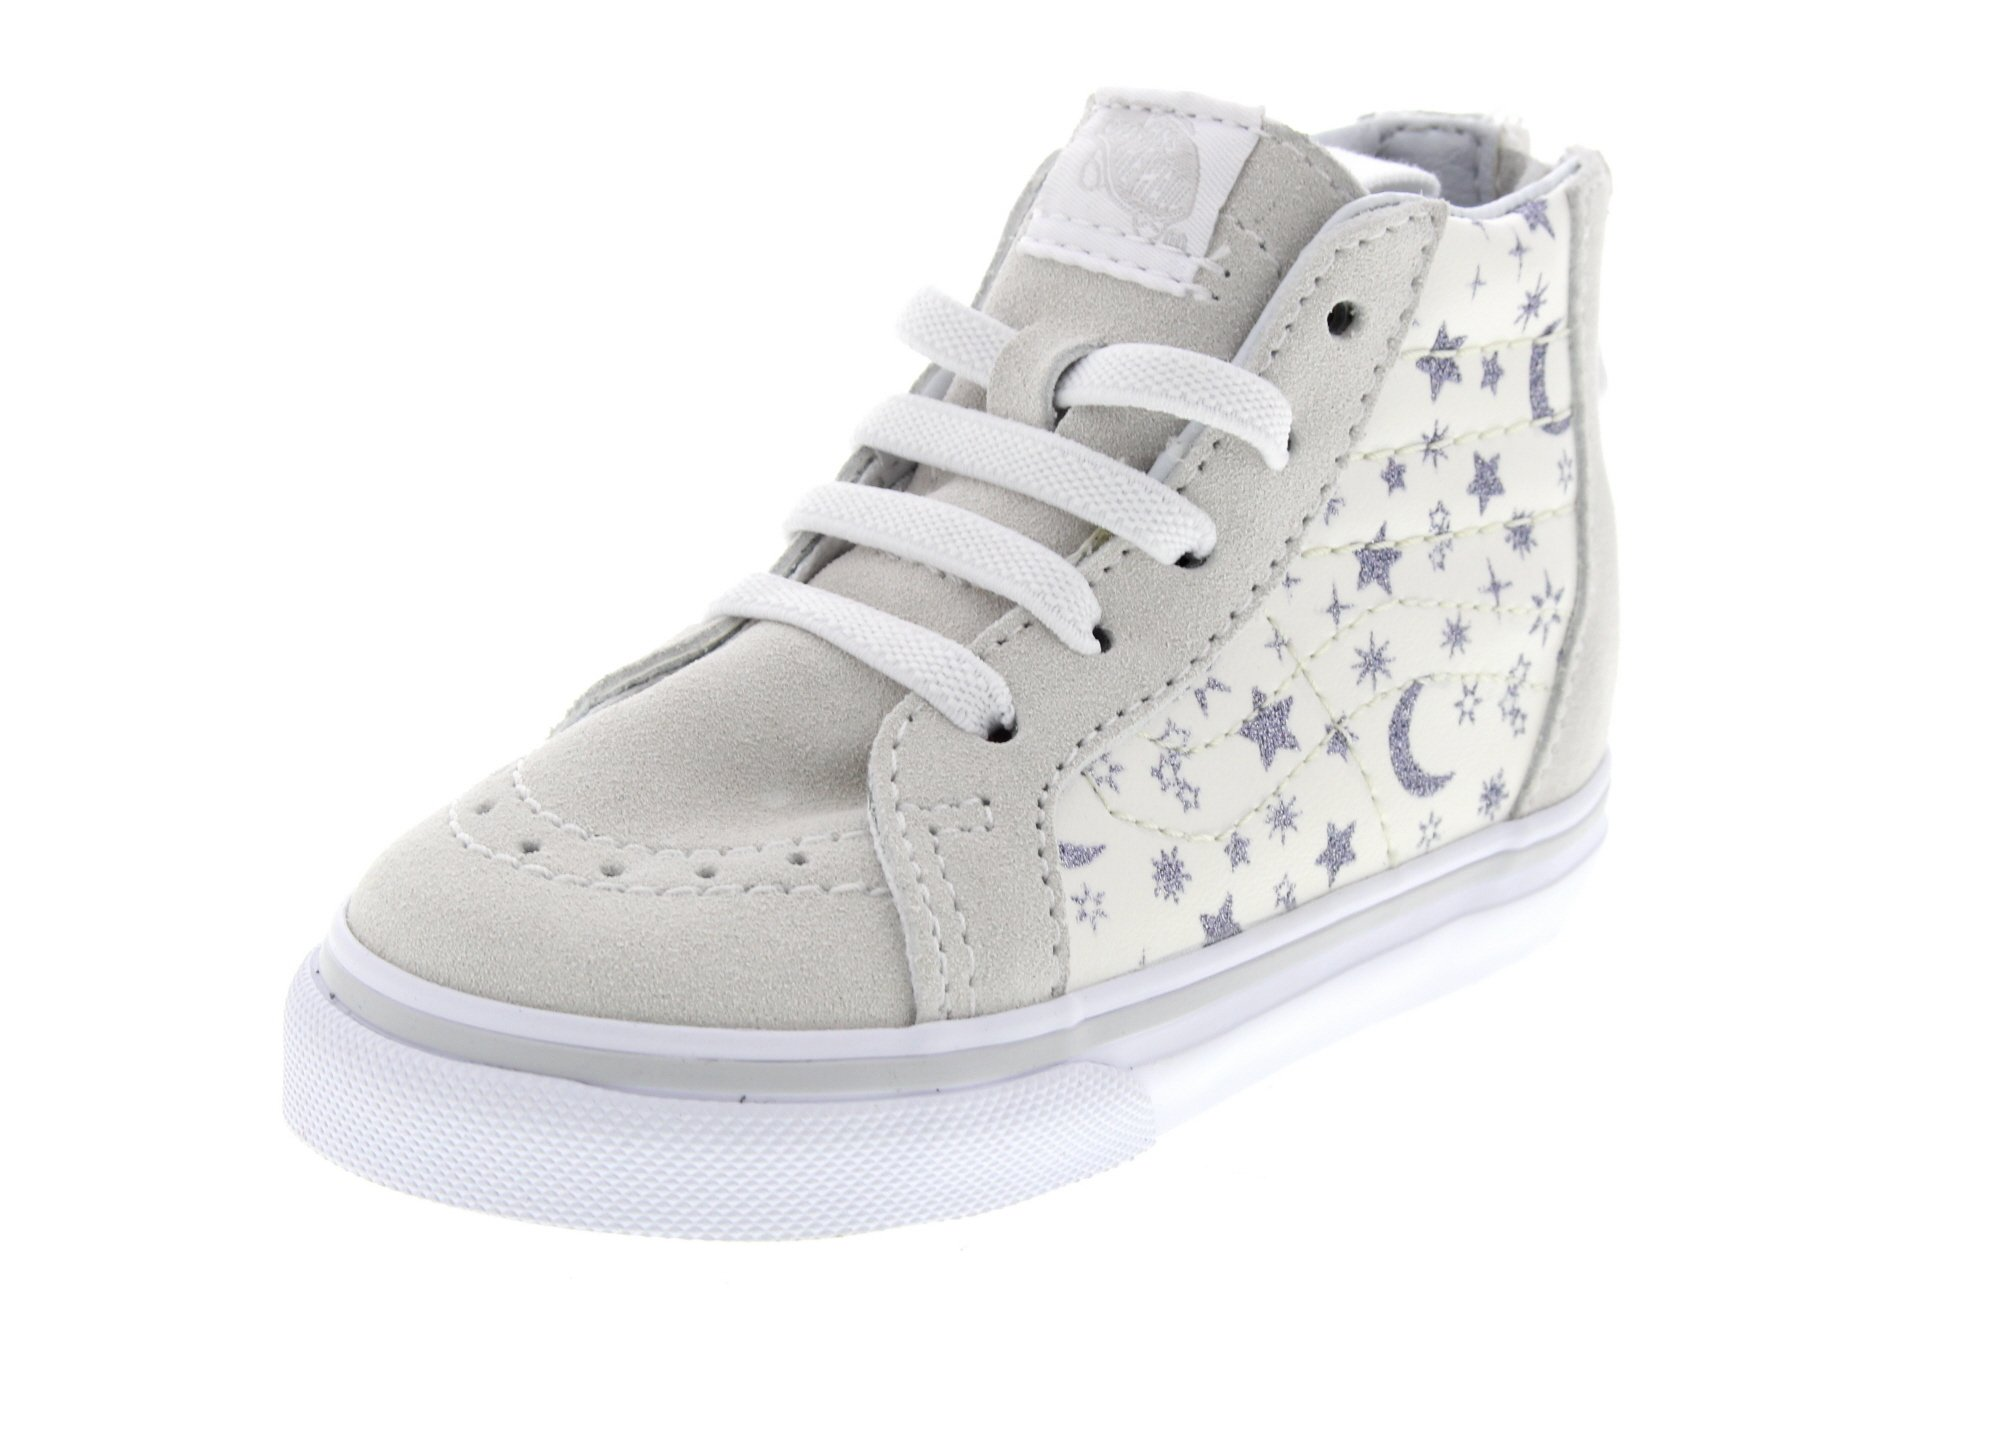 43b3ae588d Vans Toddlers Sk8-Hi Zip (Star Glitter) White VN0A32R3OS9 Toddler Size 6